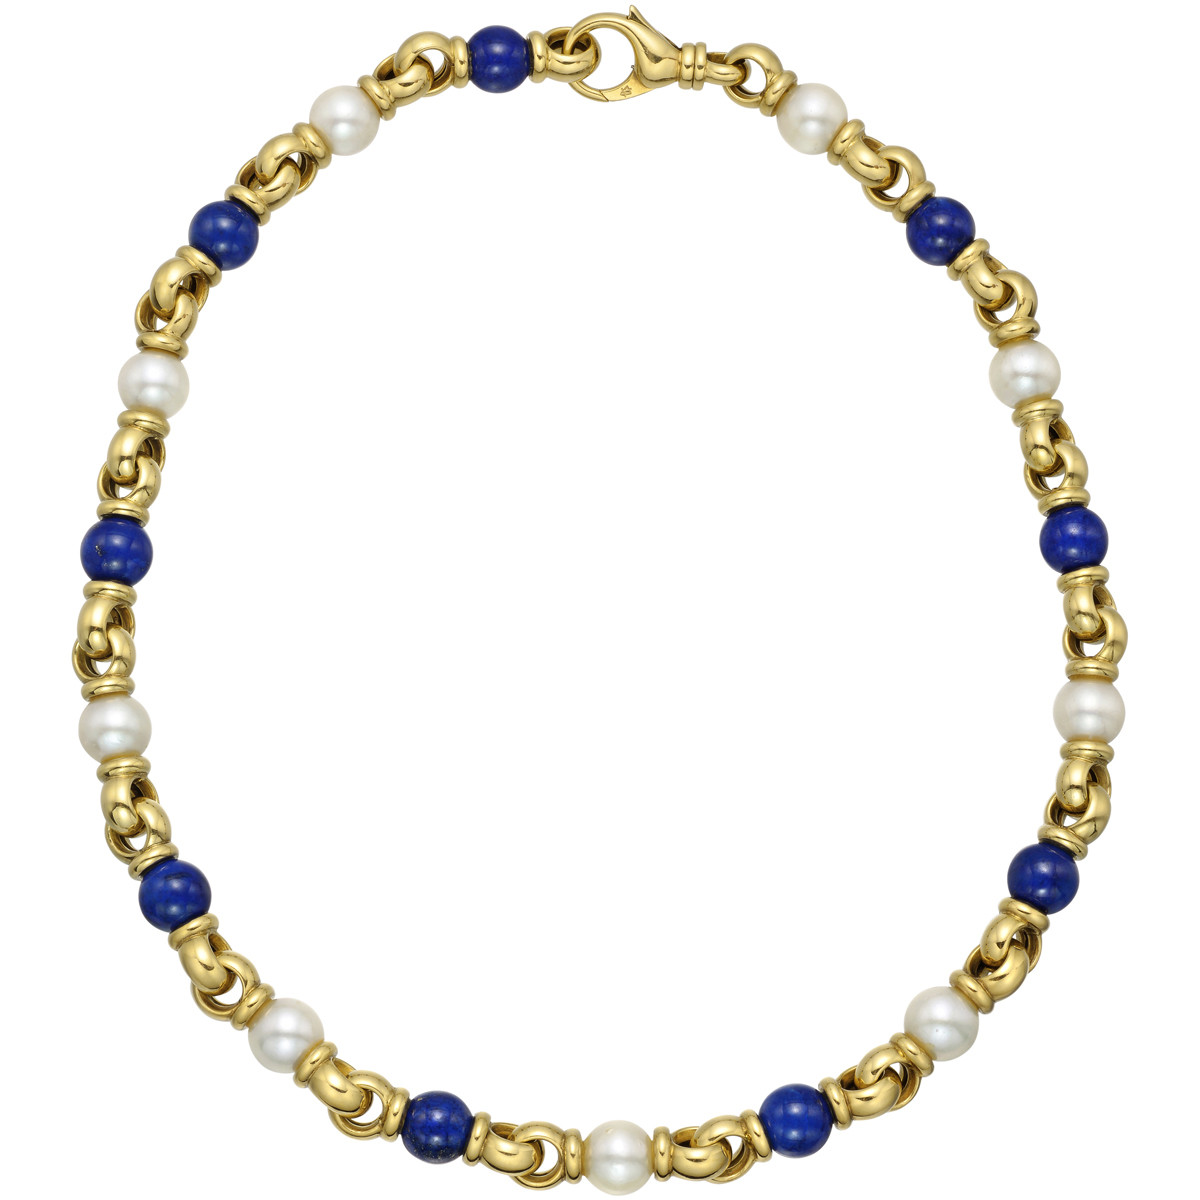 18k Yellow Gold, Lapis & Pearl Necklace